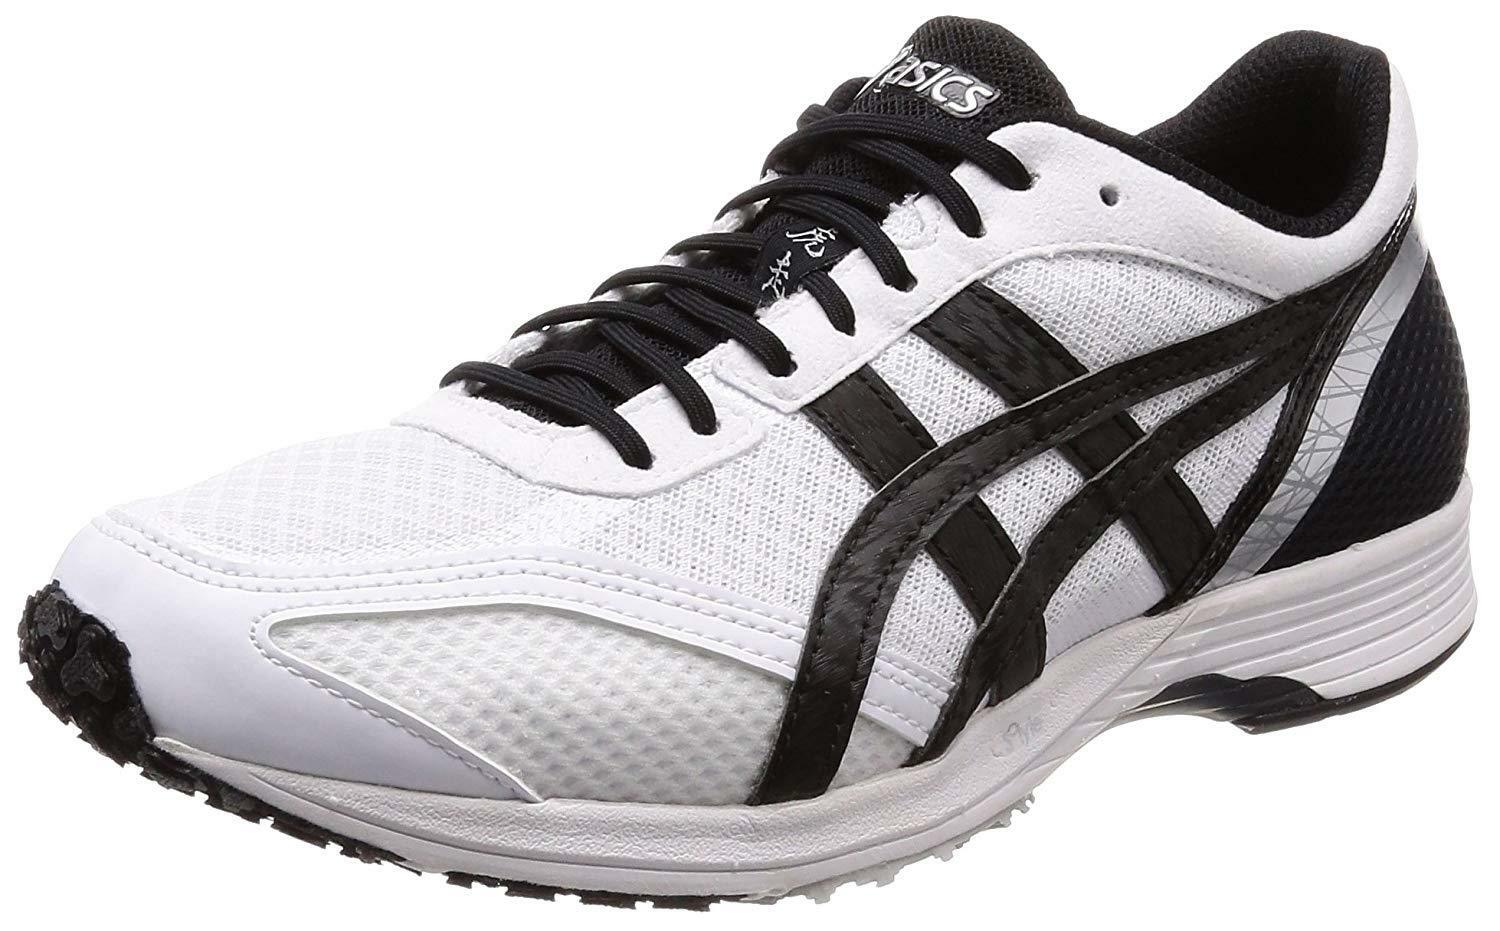 ASICS running shoes shoes shoes TARTHERZEAL TS 4-Wide White Black 96af8c